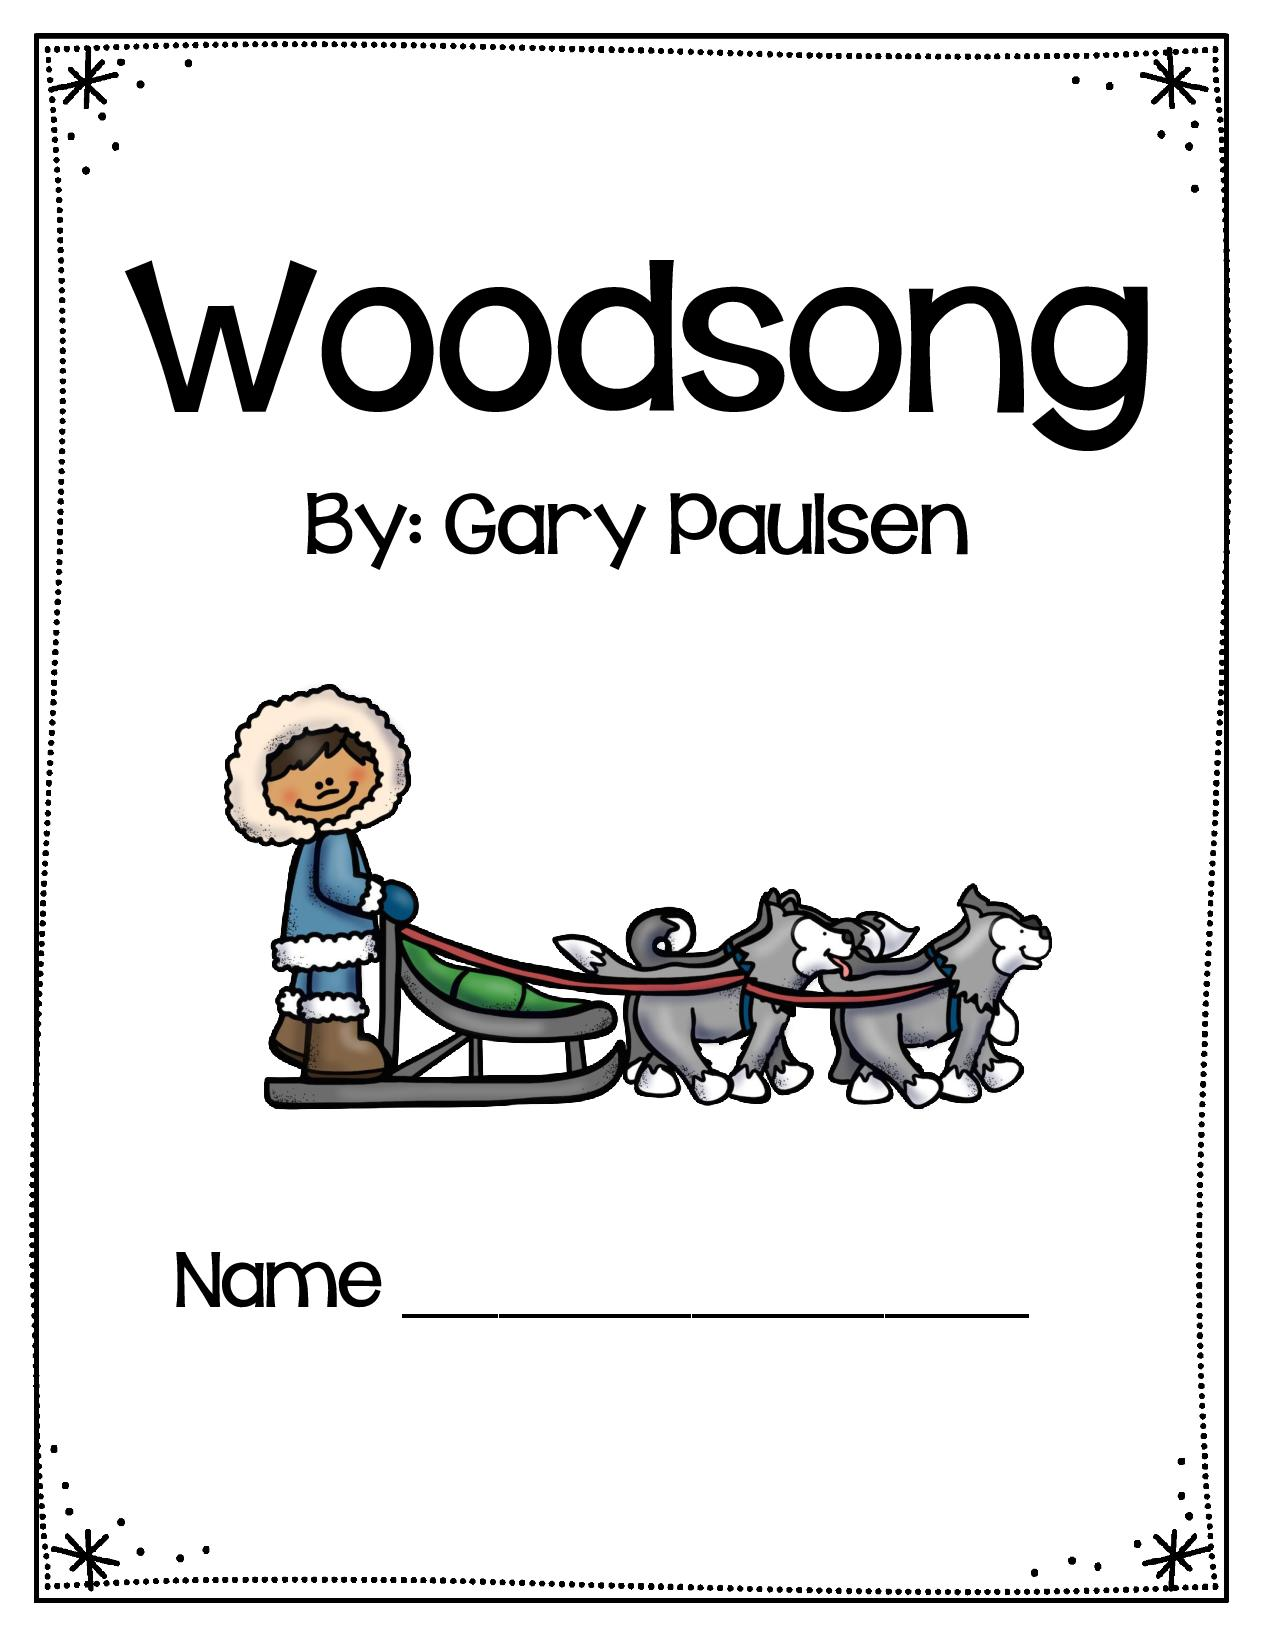 woodsong-unit-page-002